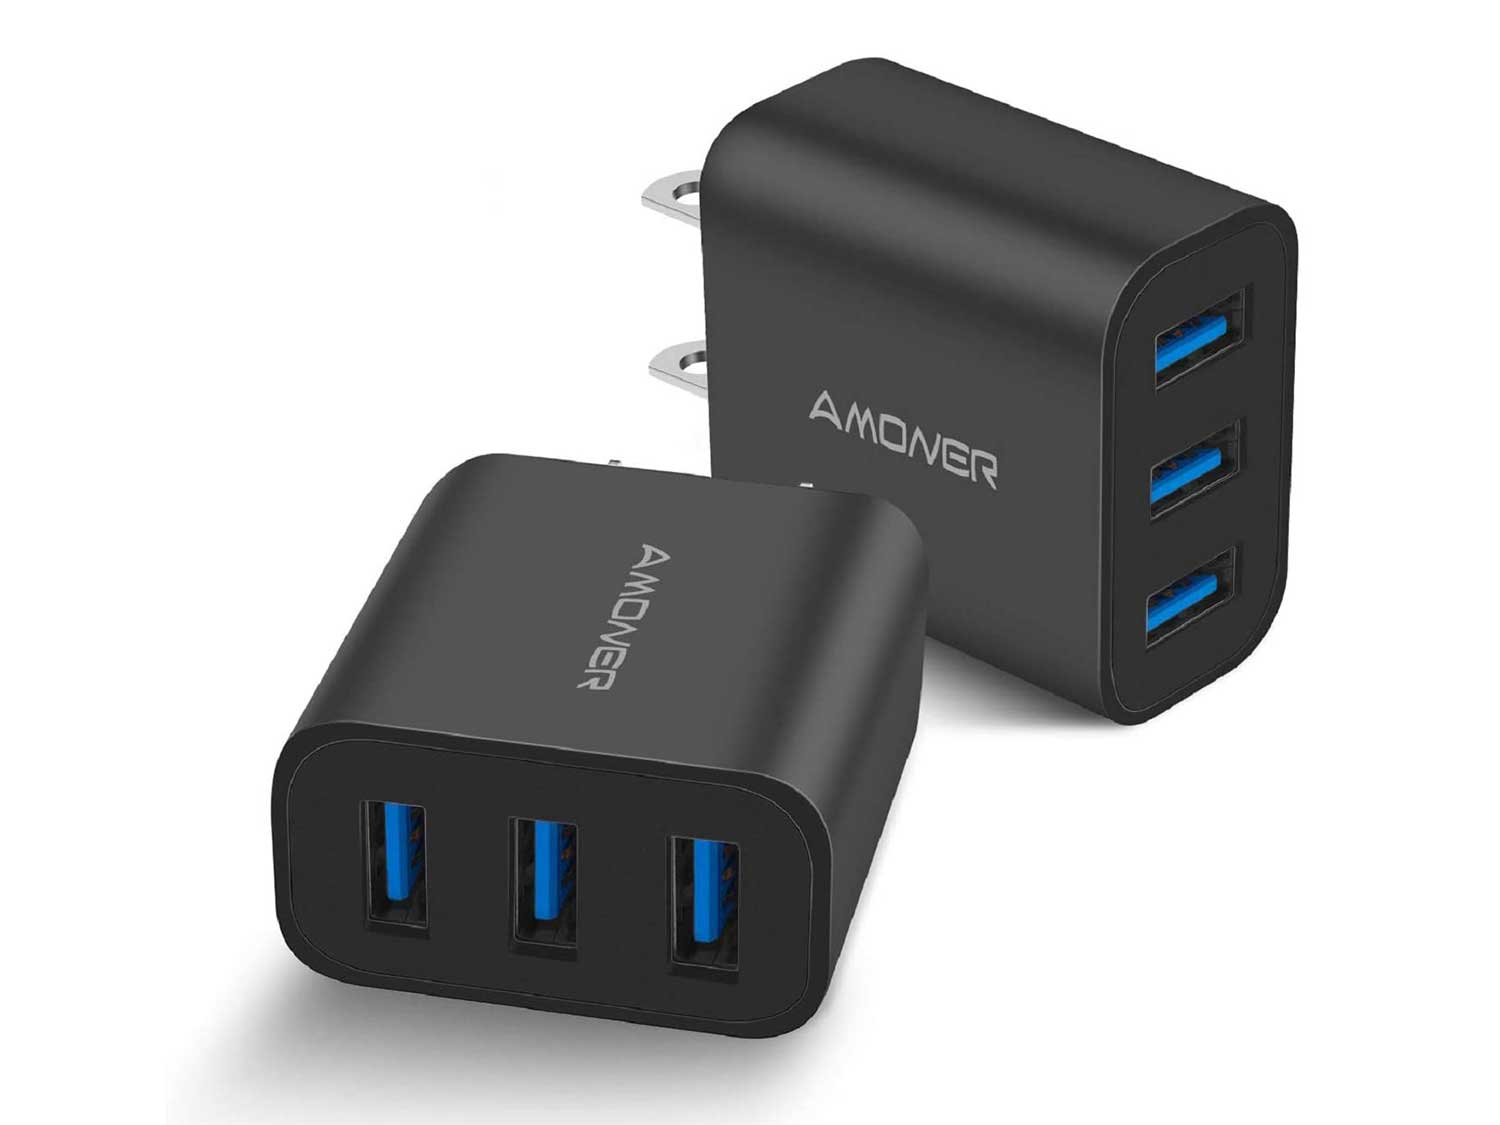 Amoner Wall Charger, Upgraded 2Pack 15W 3-Port USB Plug Cube Portable Wall Charger Plug for iPhone 12/mini/Pro/Max/11/Pro/Xs/XR/X/8/7/Plus, iPad Pro/Air 2/Mini 2, Galaxy10/9, Note10/9, and More